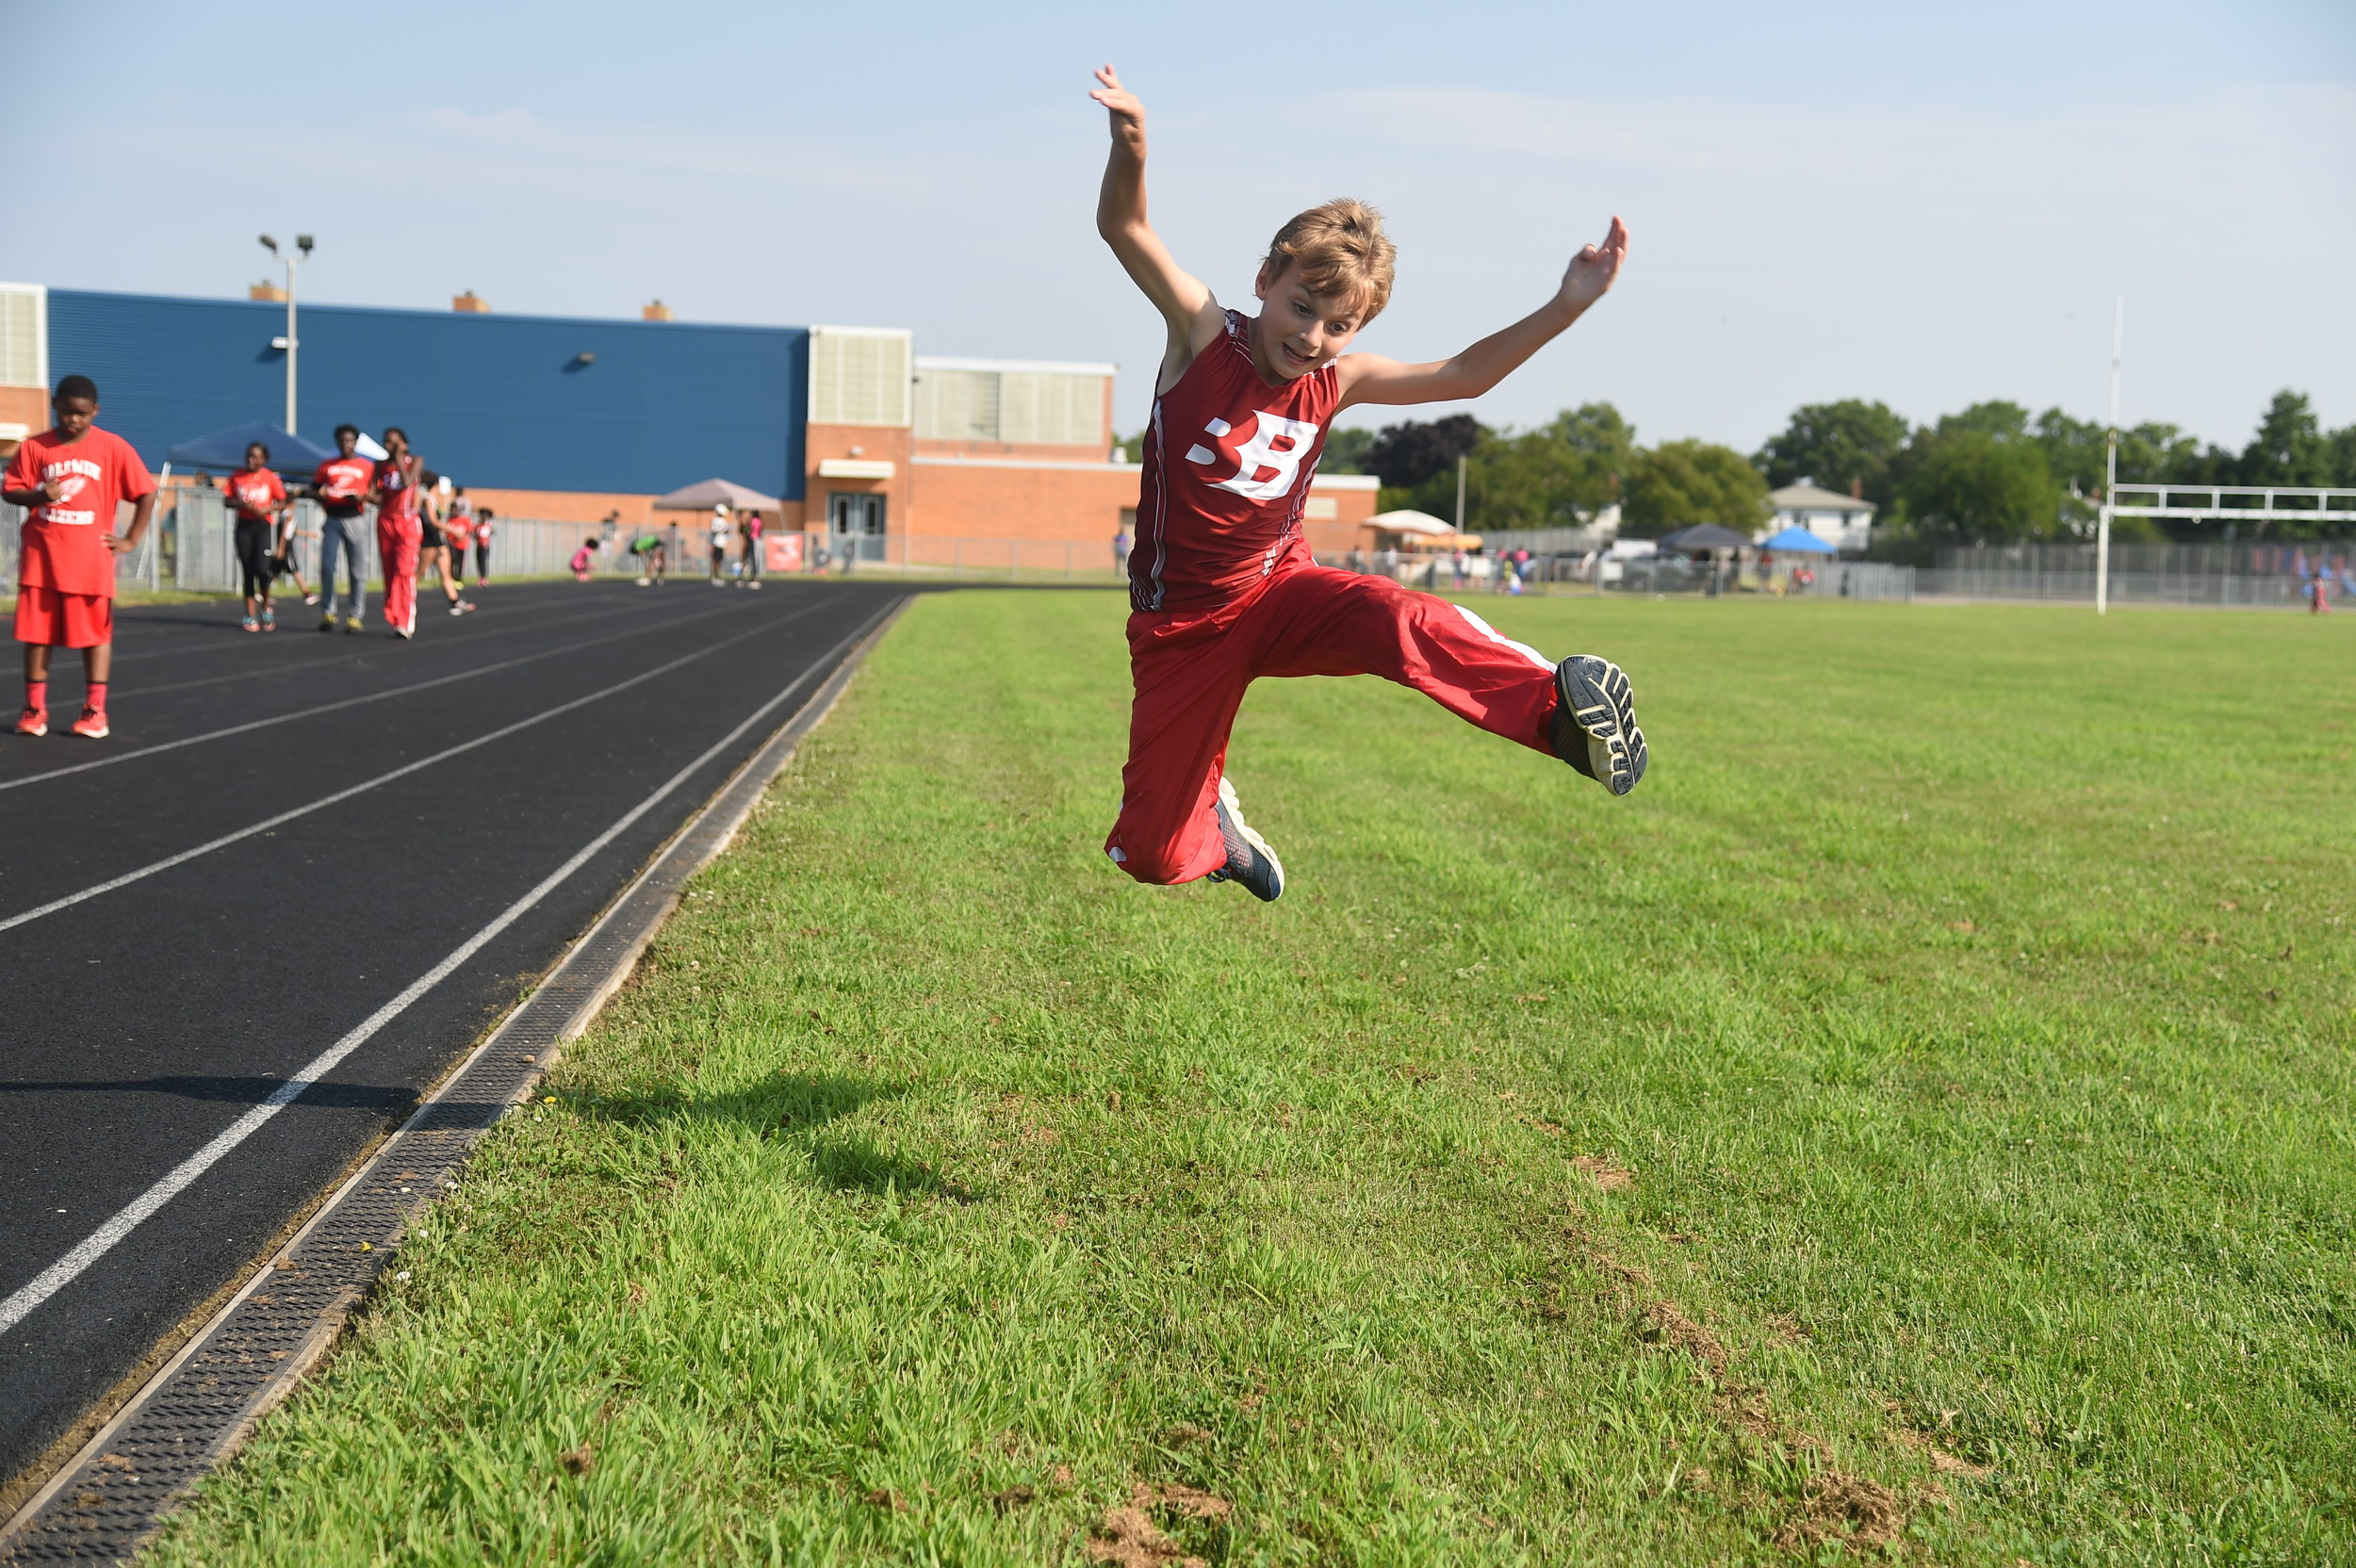 Sean O'Connor, 10, practiced for the long jump.